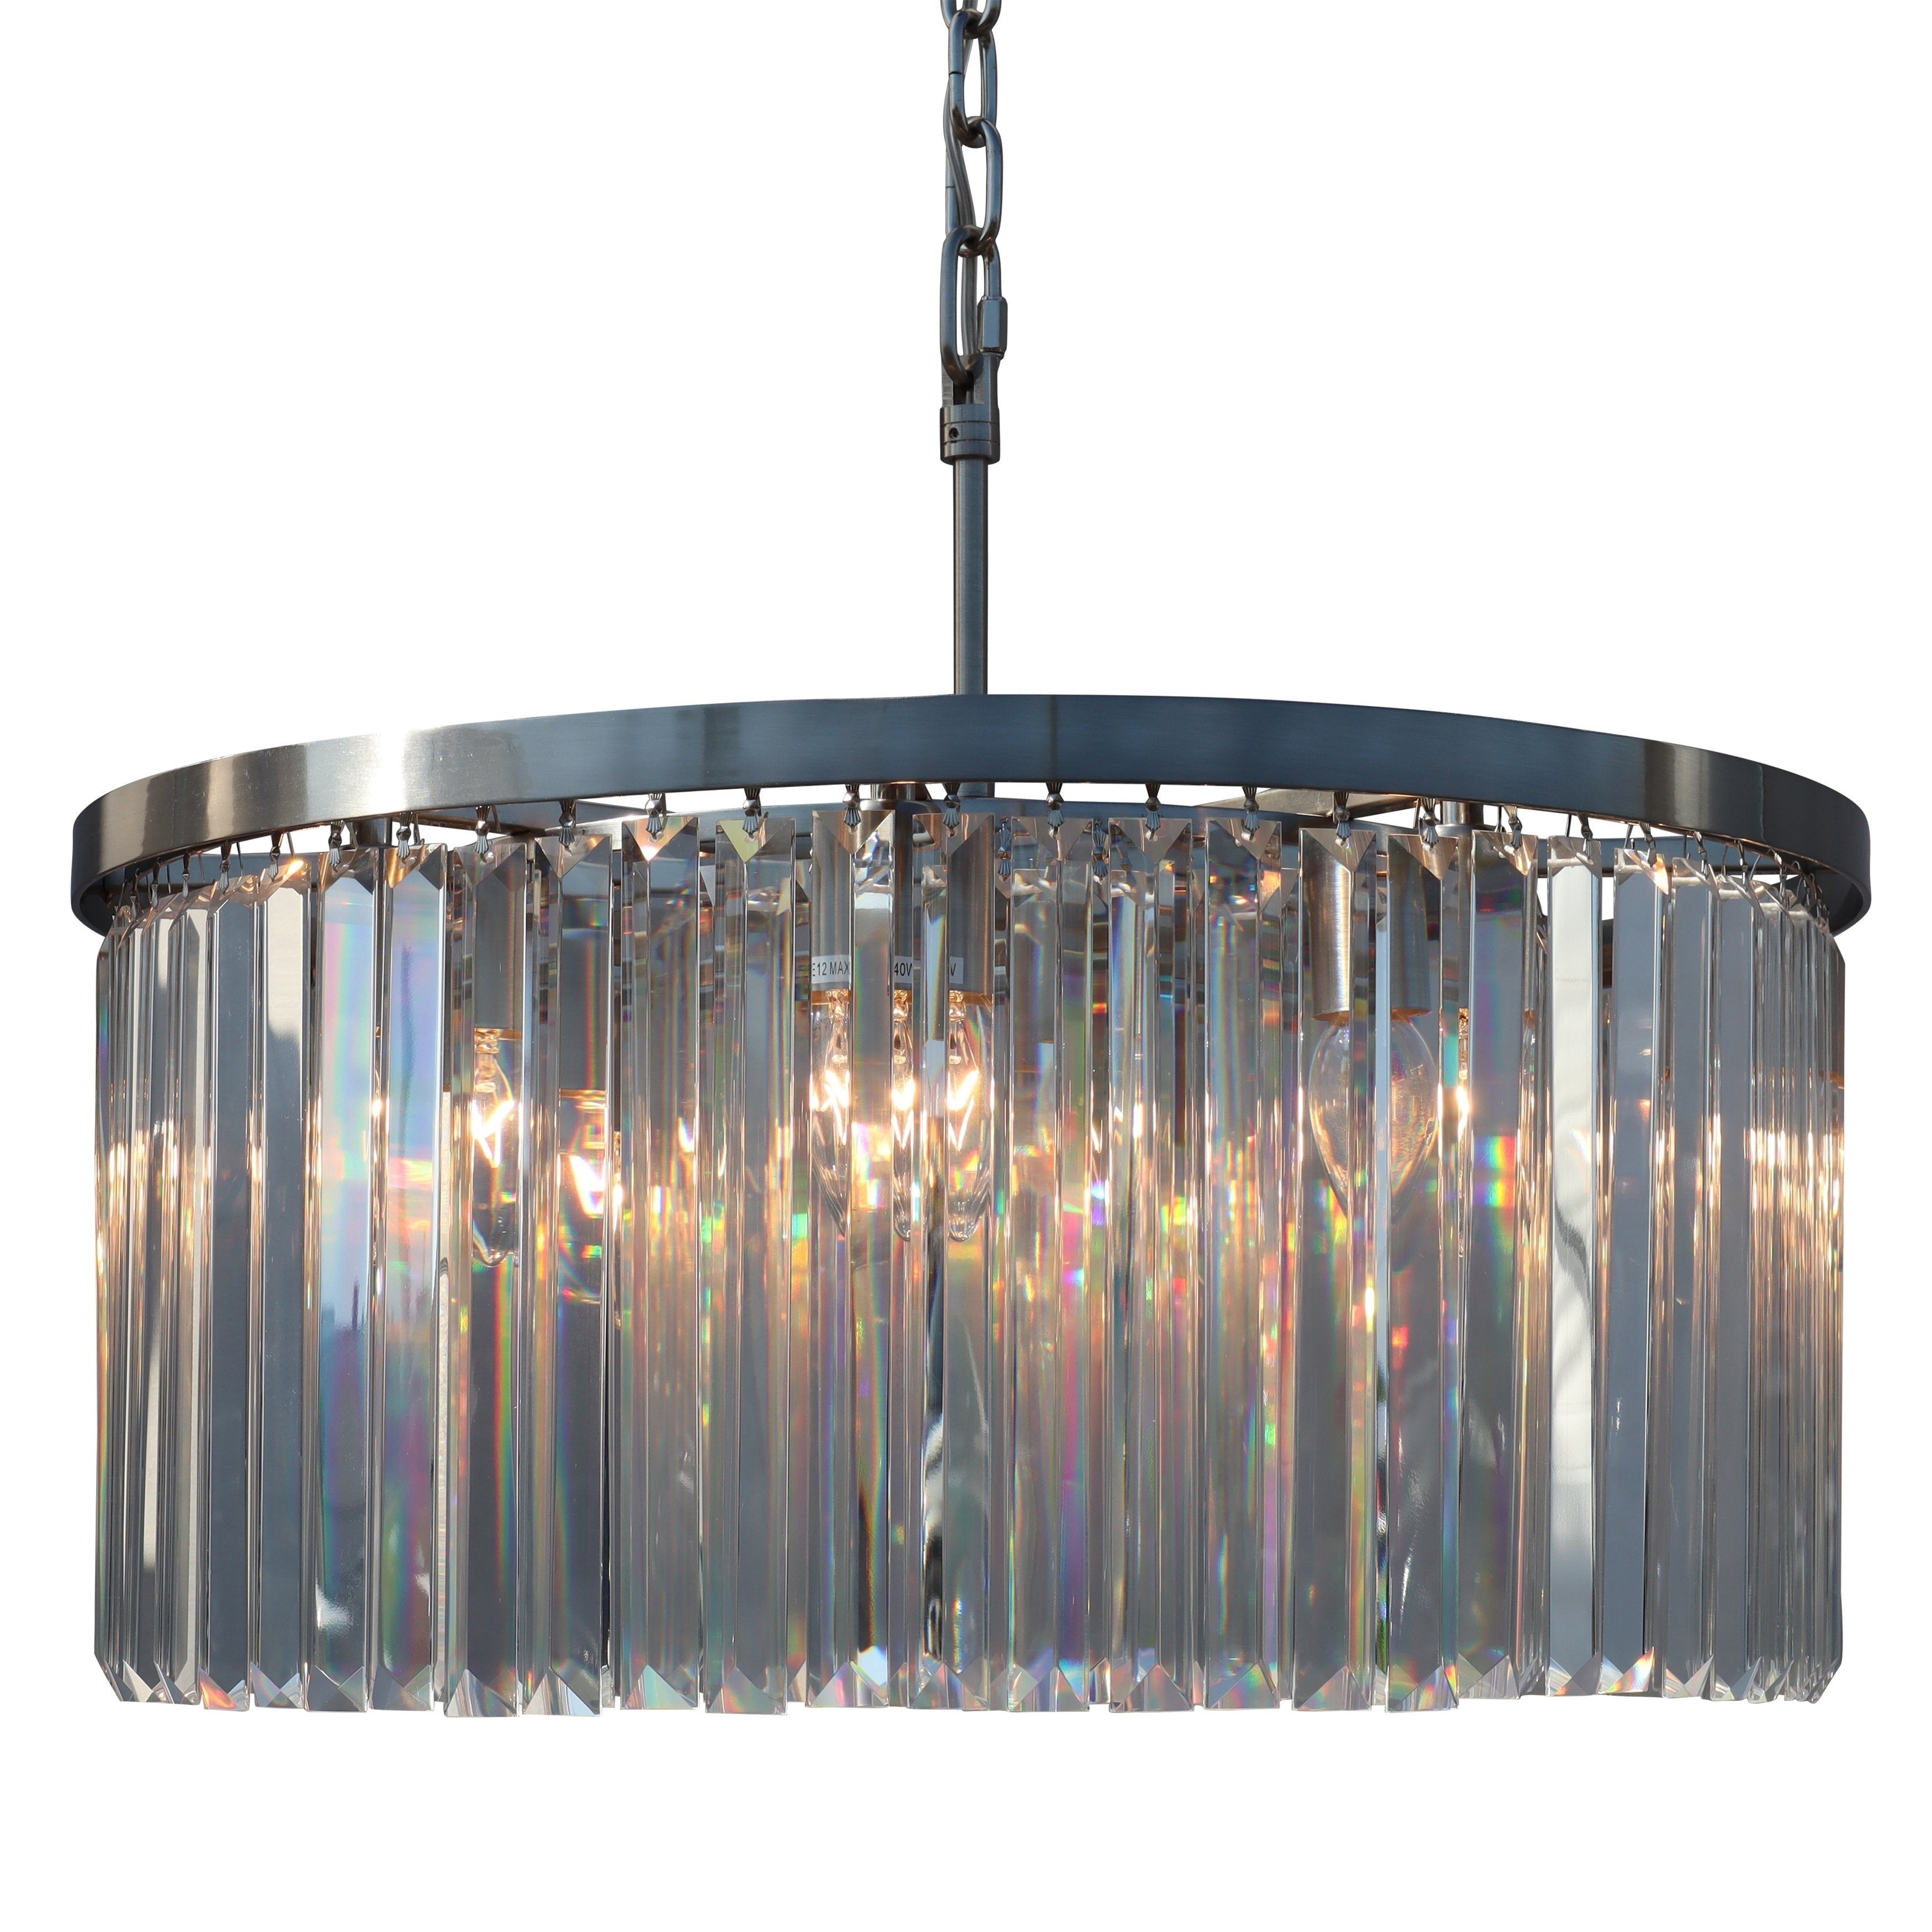 Shop Dangelo 8 Light Round Glass Crystal Chandelier Brushed Nickel Small 24 5 Overstock 30798516